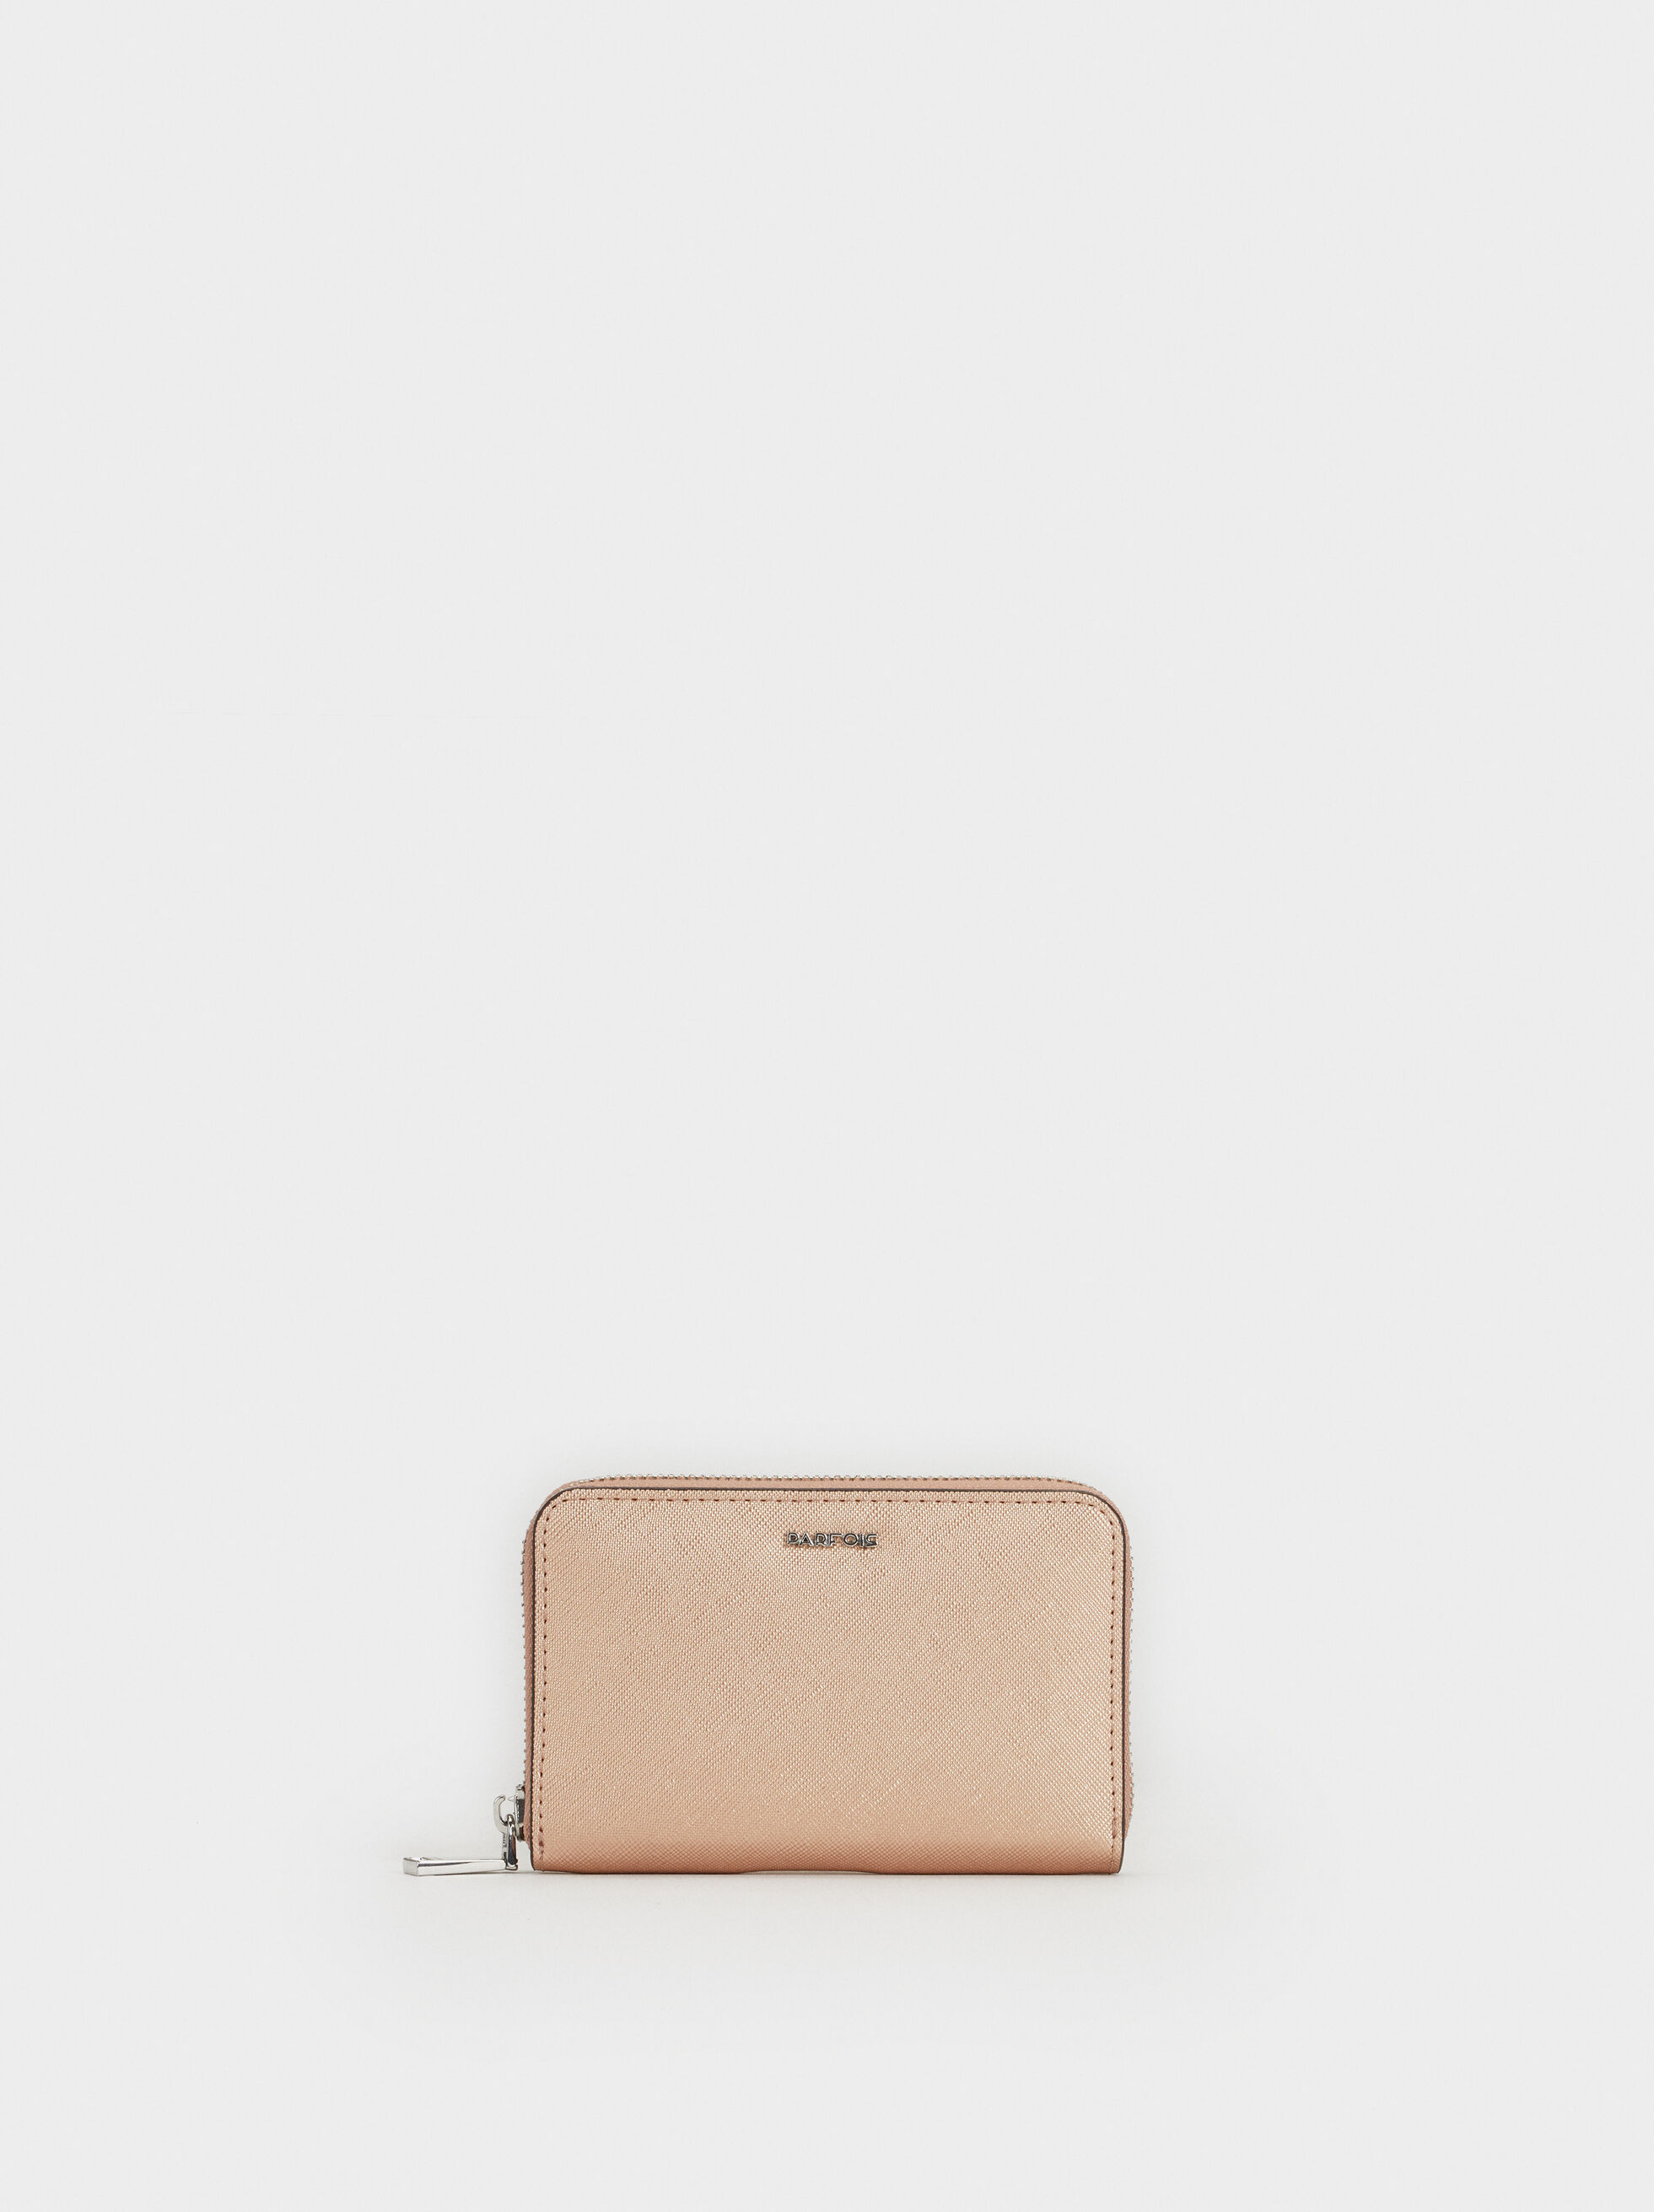 Basic Bill Compact Wallet, , hi-res